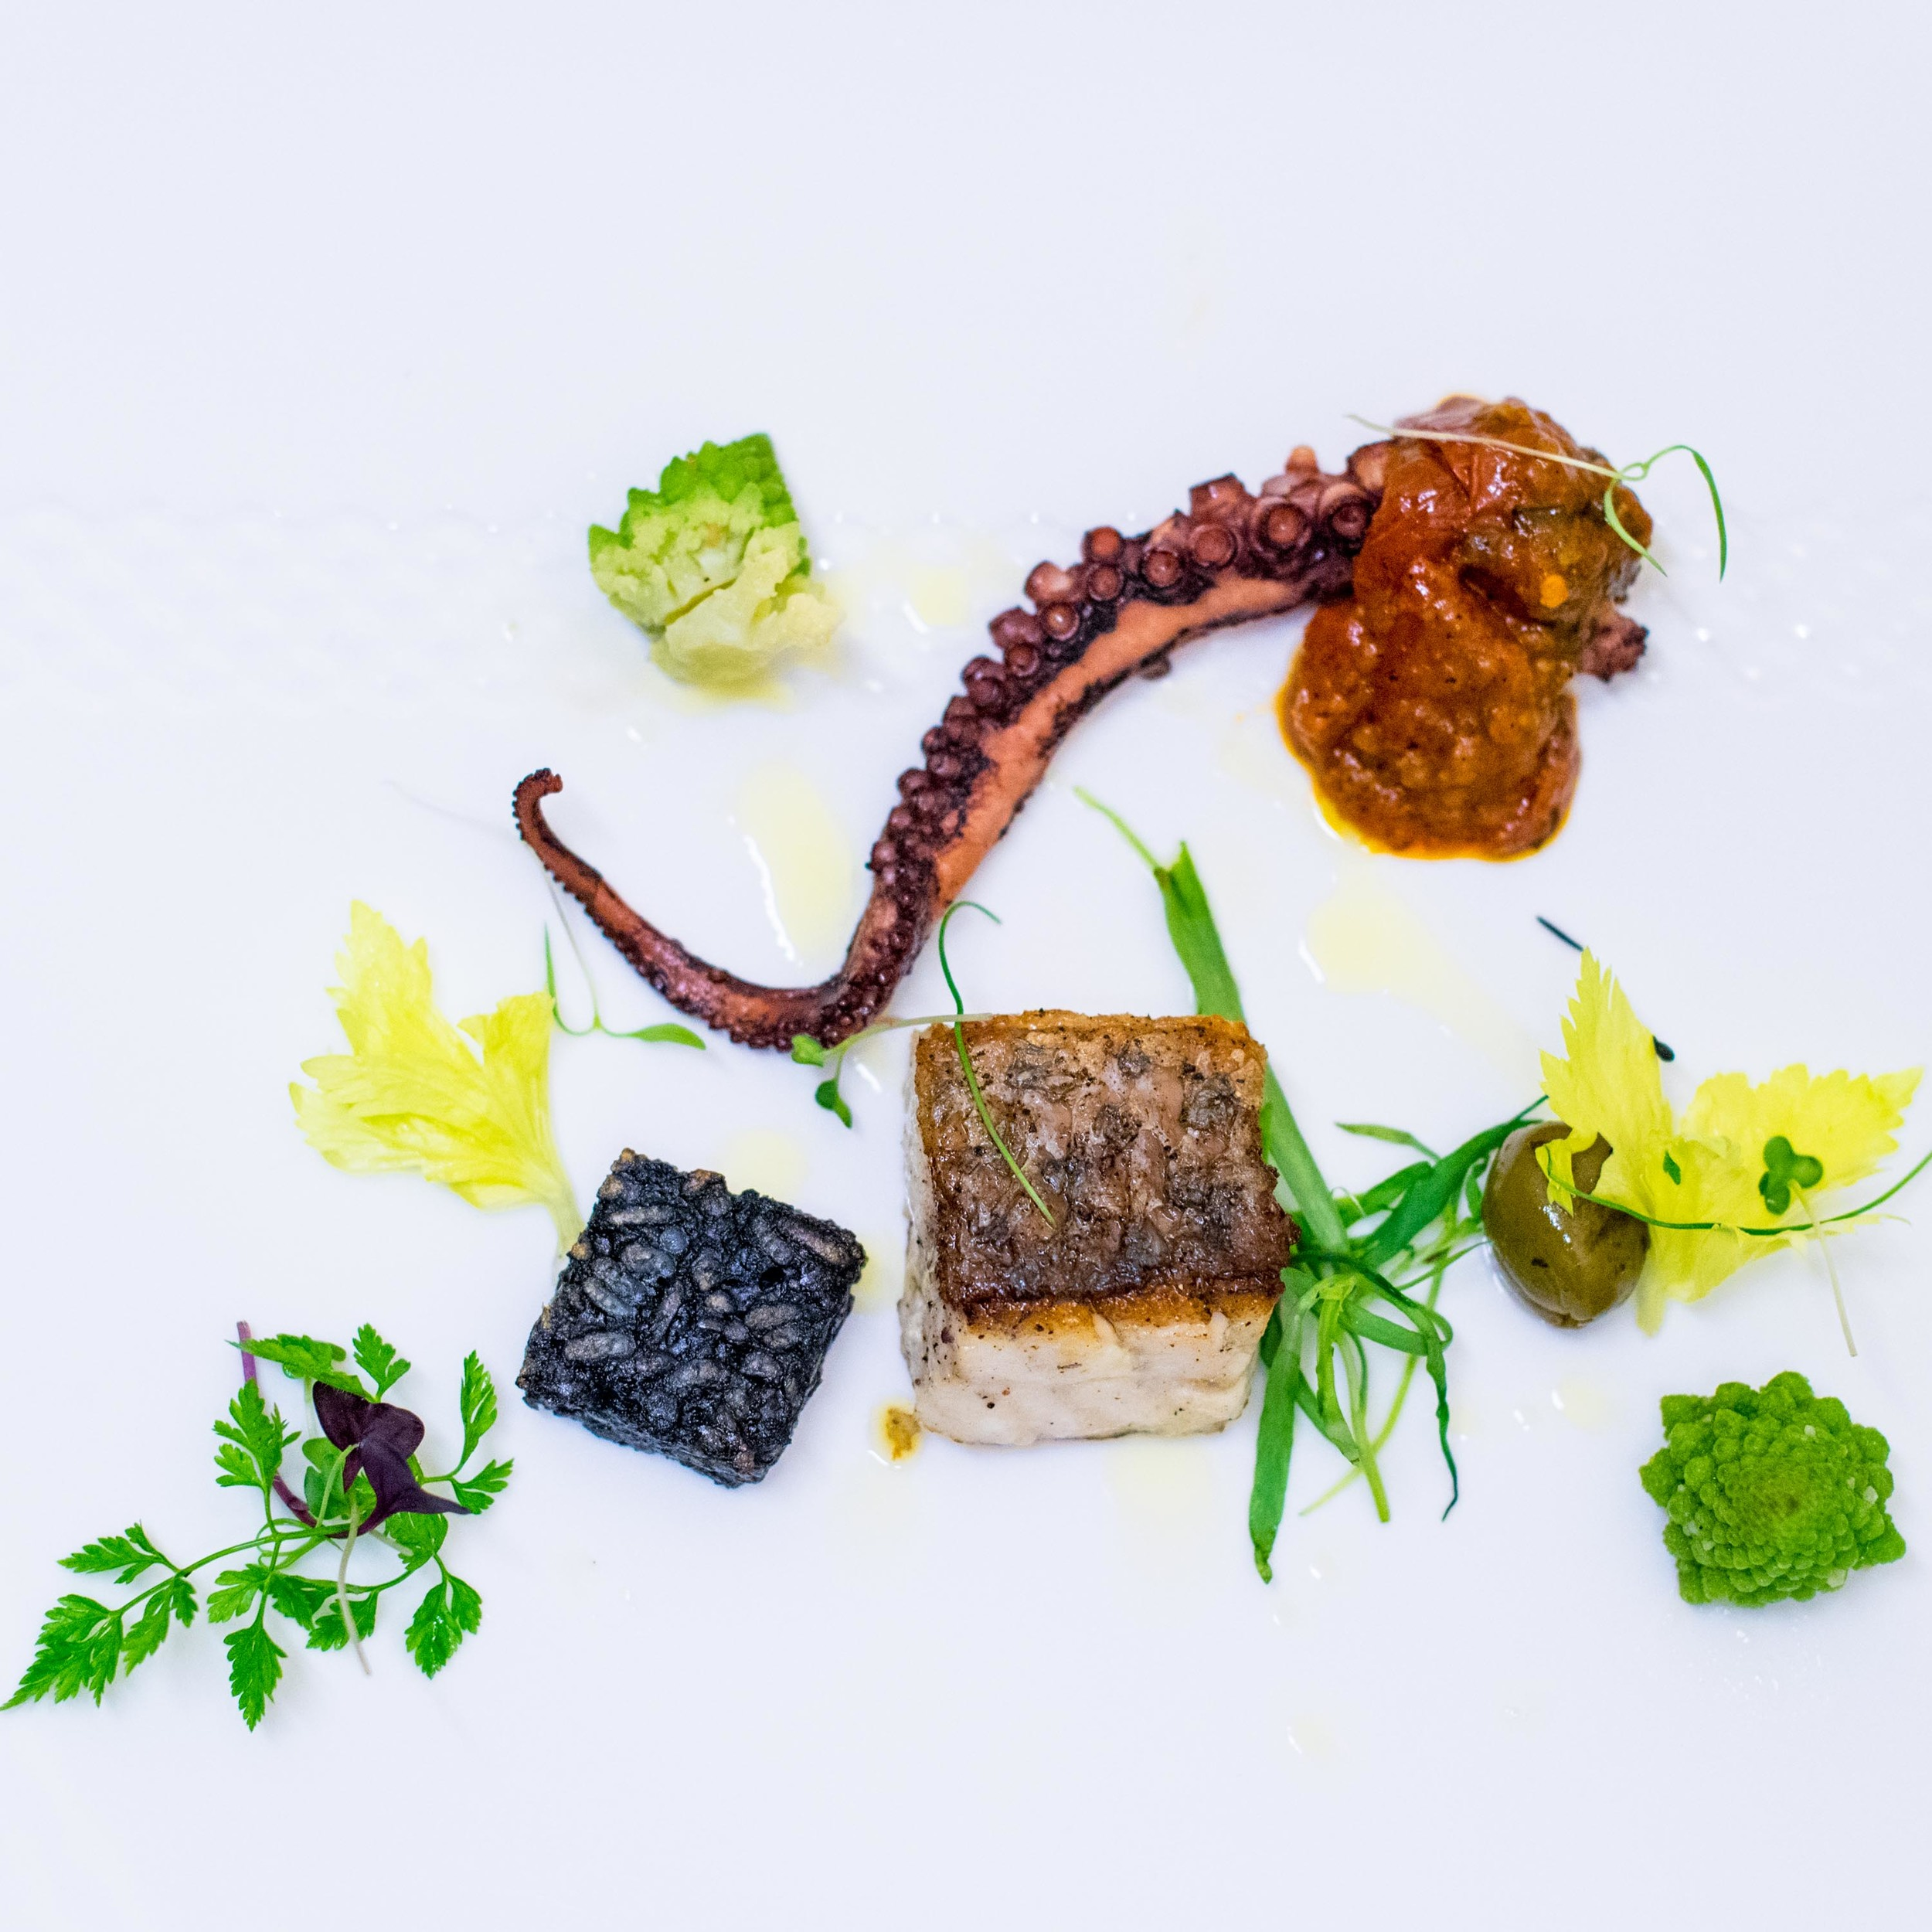 Grilled Sea Bass and Octopus with Crispy Squid Ink Risotto Cake, Roasted Green Olive - 2016 Basilissimo   Basilico - Regent Singapore